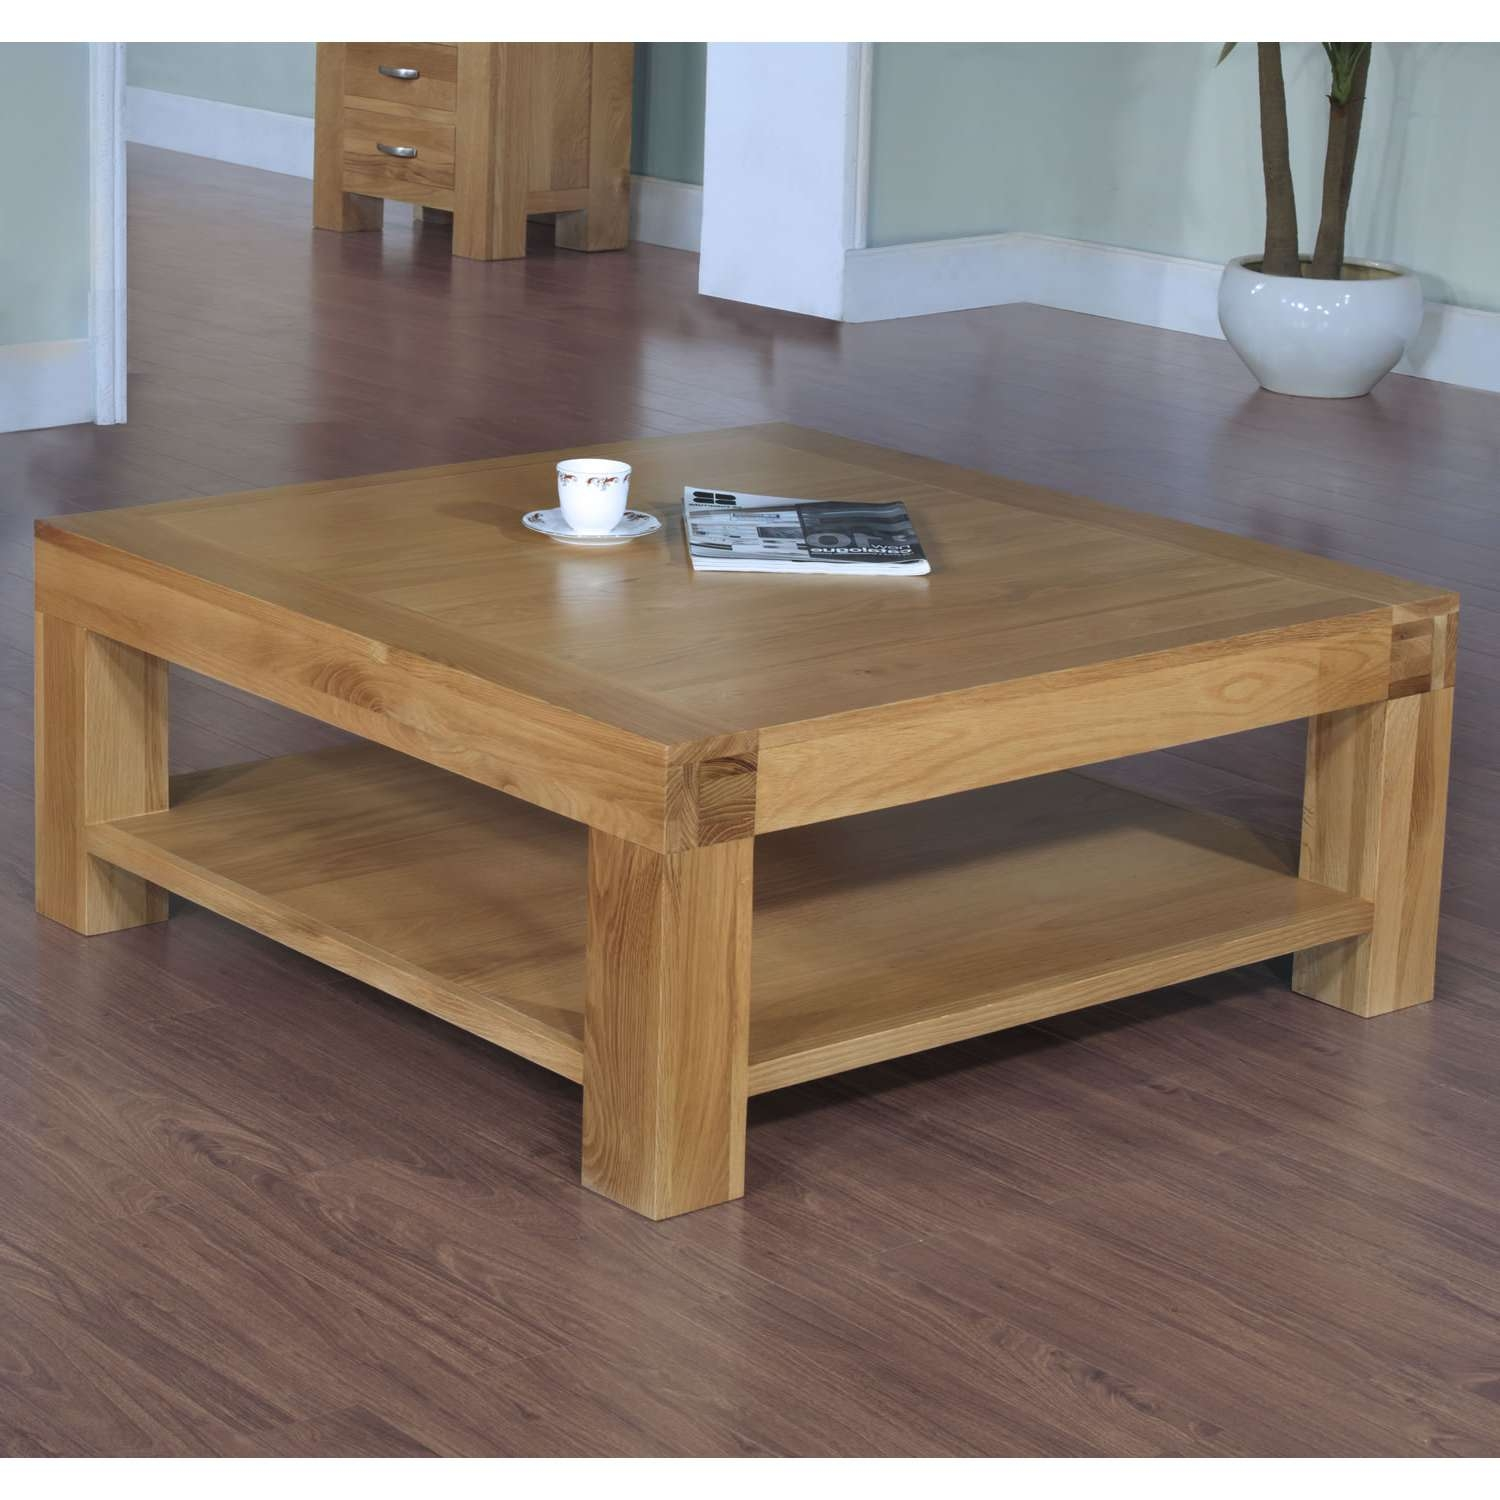 Most Recently Released Extra Large Square Coffee Tables With Regard To Coffee Table : Amazing Low Coffee Table Extra Large Square Coffee (View 13 of 20)